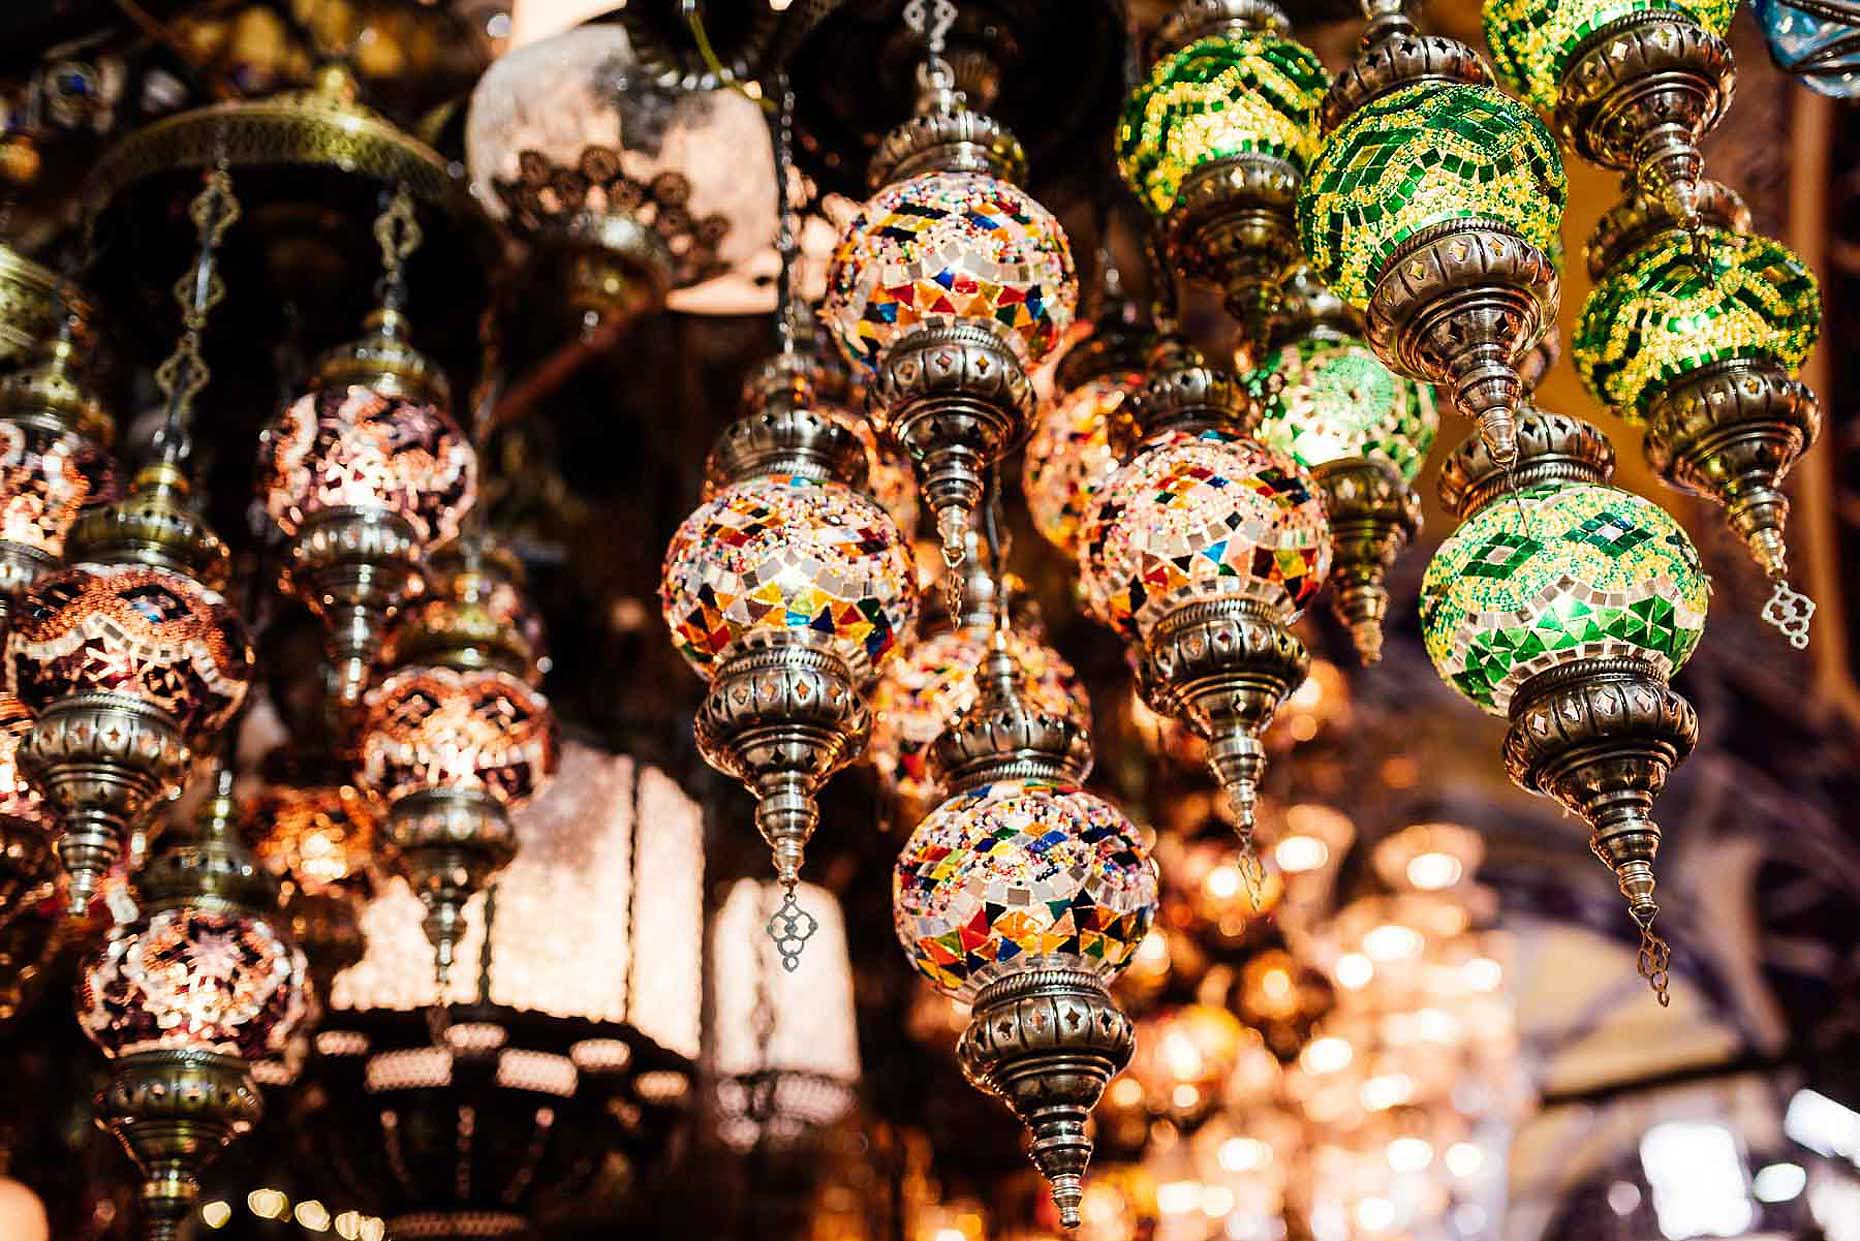 mosaic-glass-lanterns-turkish-lights-souvenirs-tradition-istanbul-grand-bazaar-17